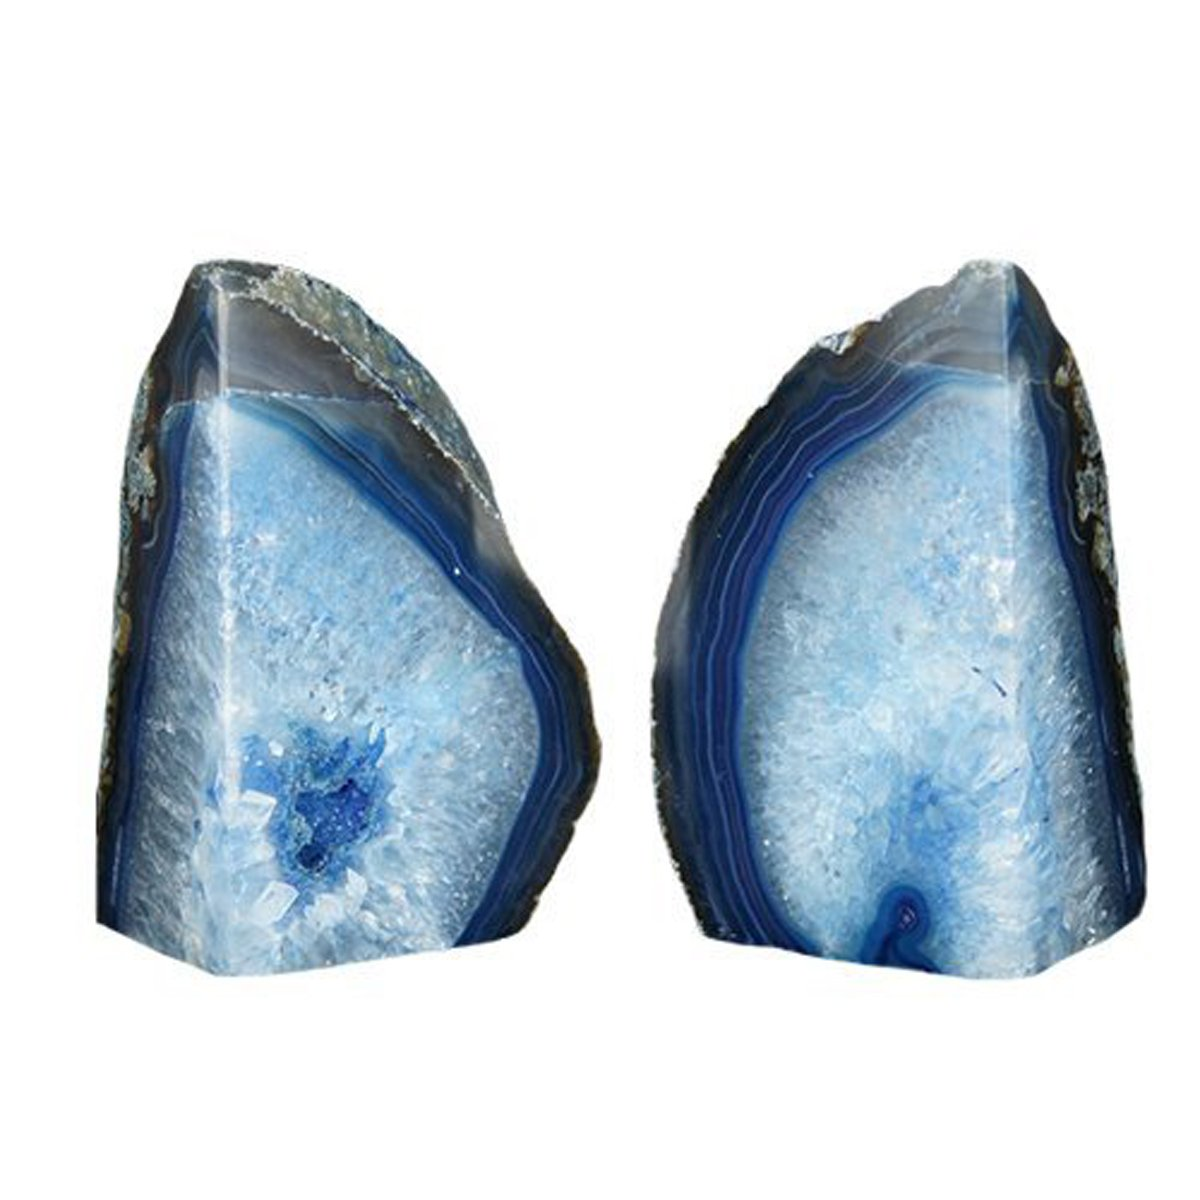 JIC Gem 3 to 4 Lbs Agate Bookends Dyed Blue Polished 1 Pair with Rubber Bumpers for Office Décor and Home Decoration by JIC Gem